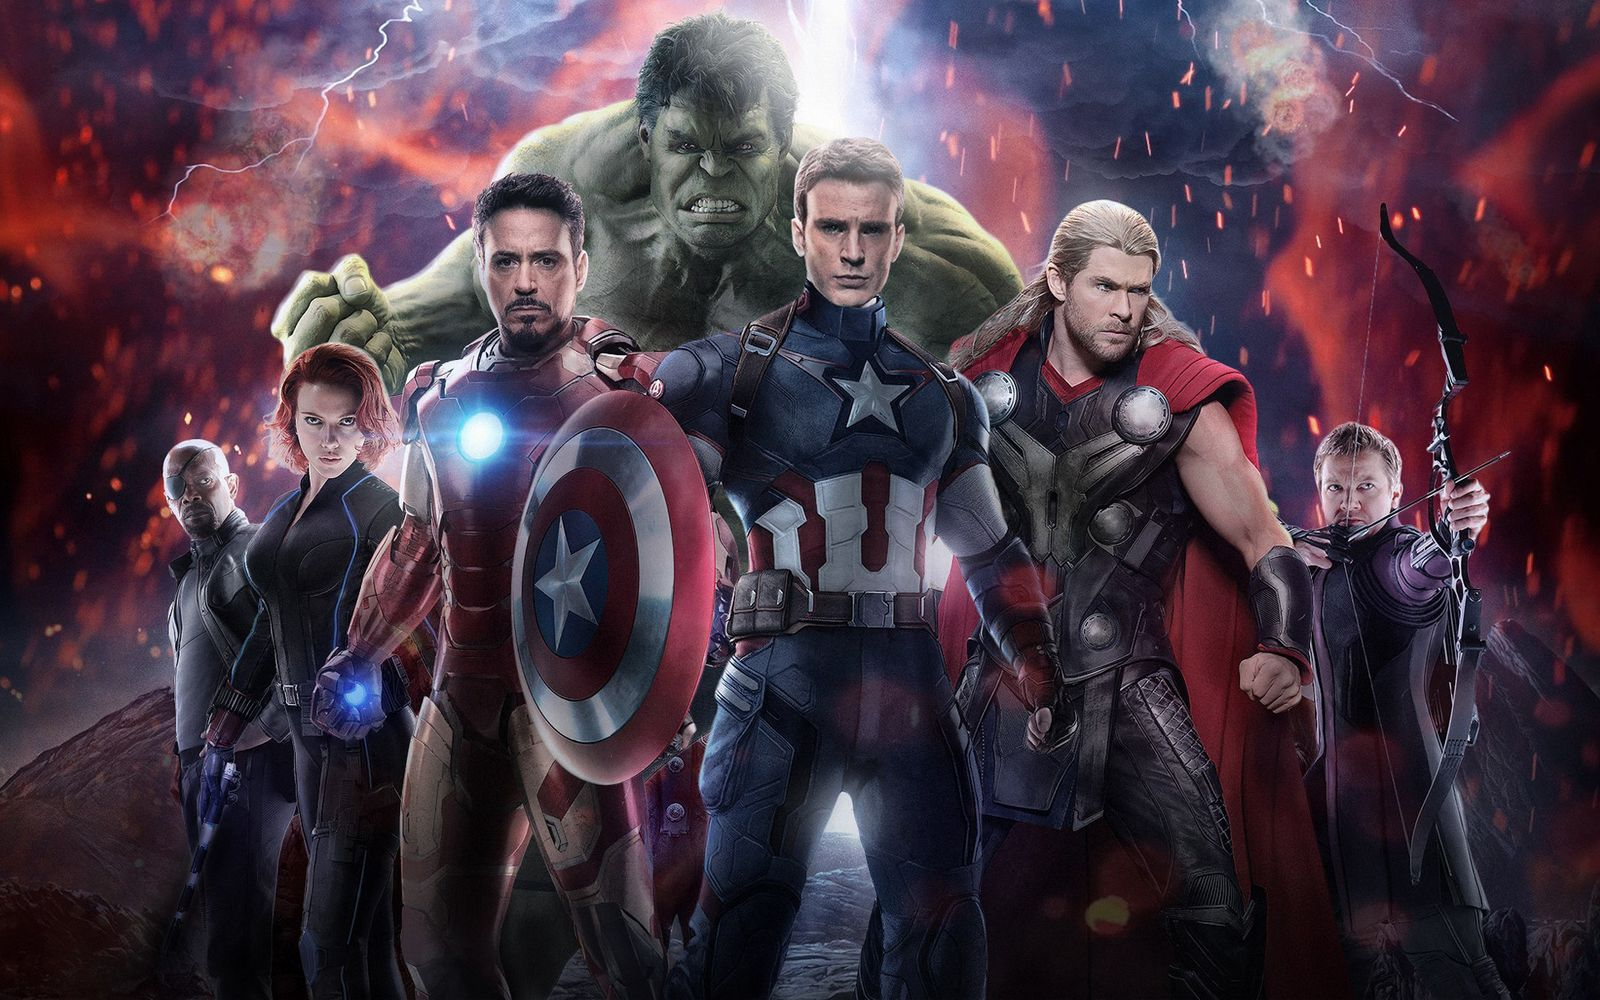 Avengers age of ultron Movie wallpaper